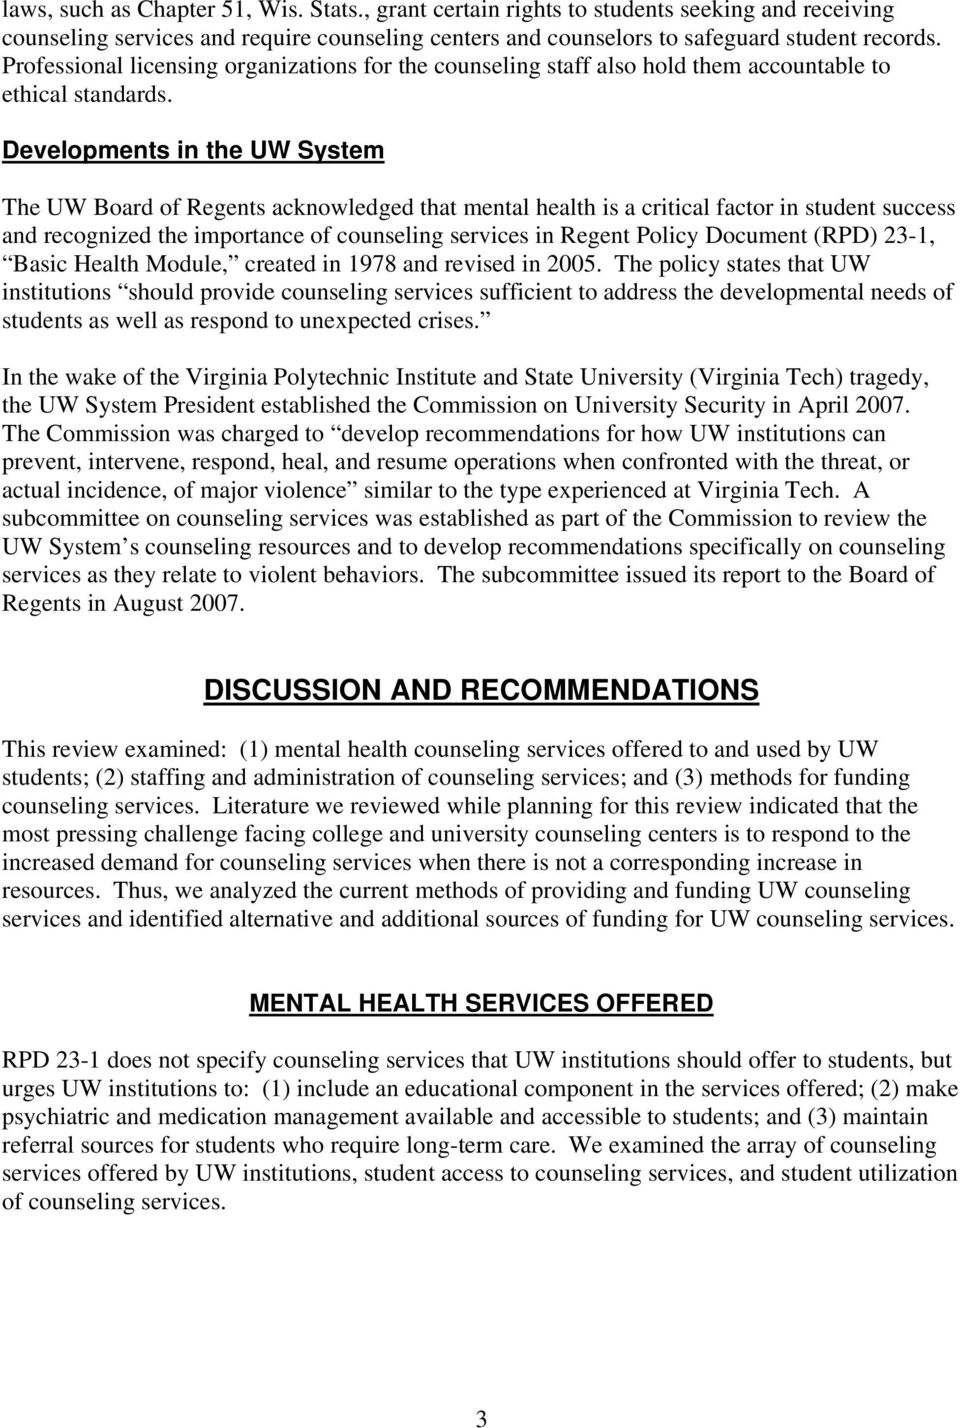 Developments in the UW System The UW Board of Regents acknowledged that mental health is a critical factor in student success and recognized the importance of counseling services in Regent Policy